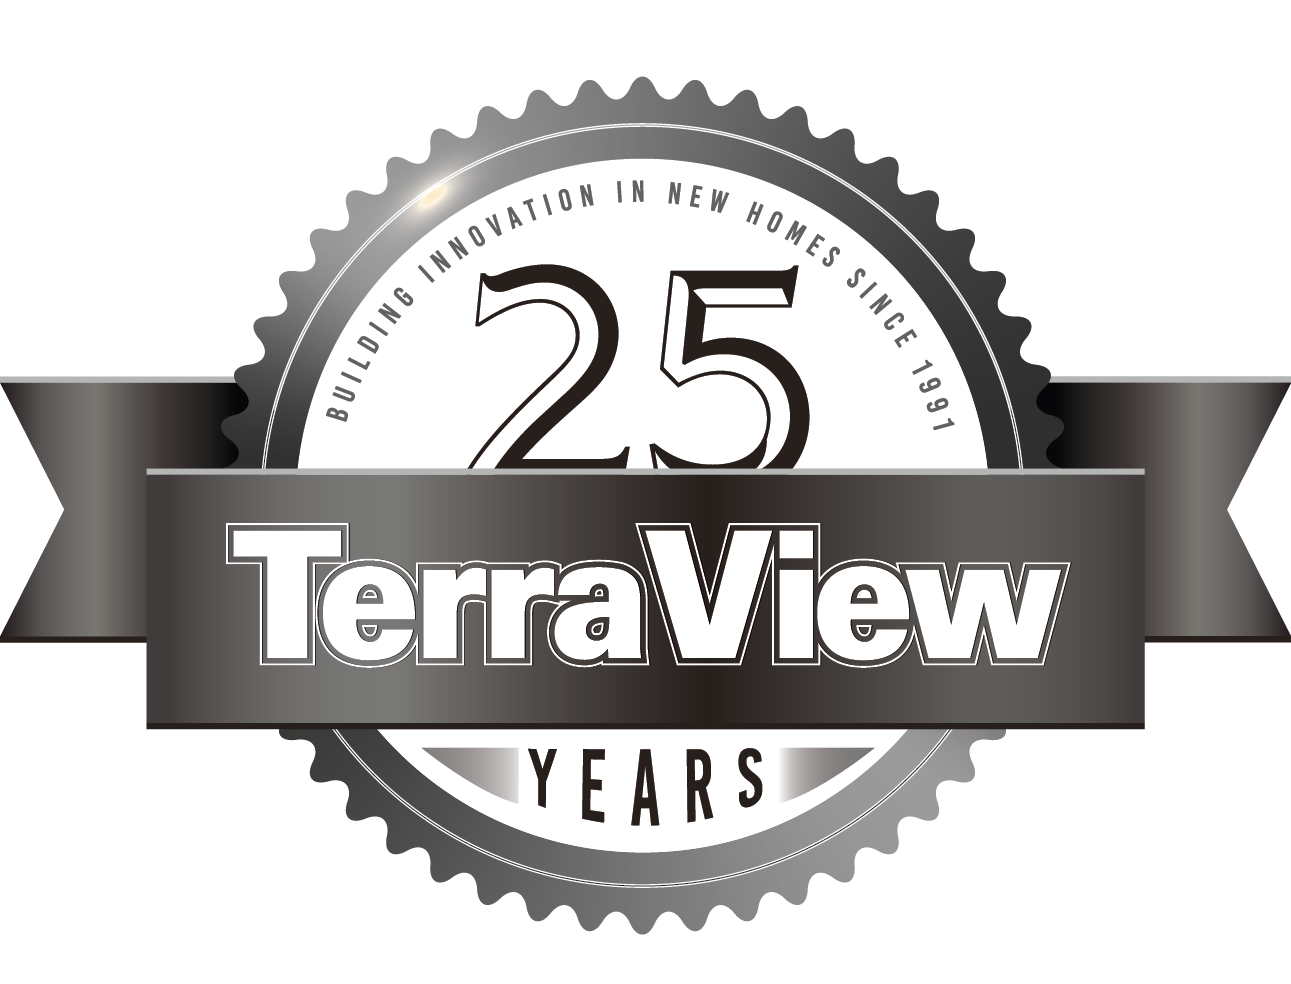 Celebrating over 25 Years of Terra View Building Homes in Guelph